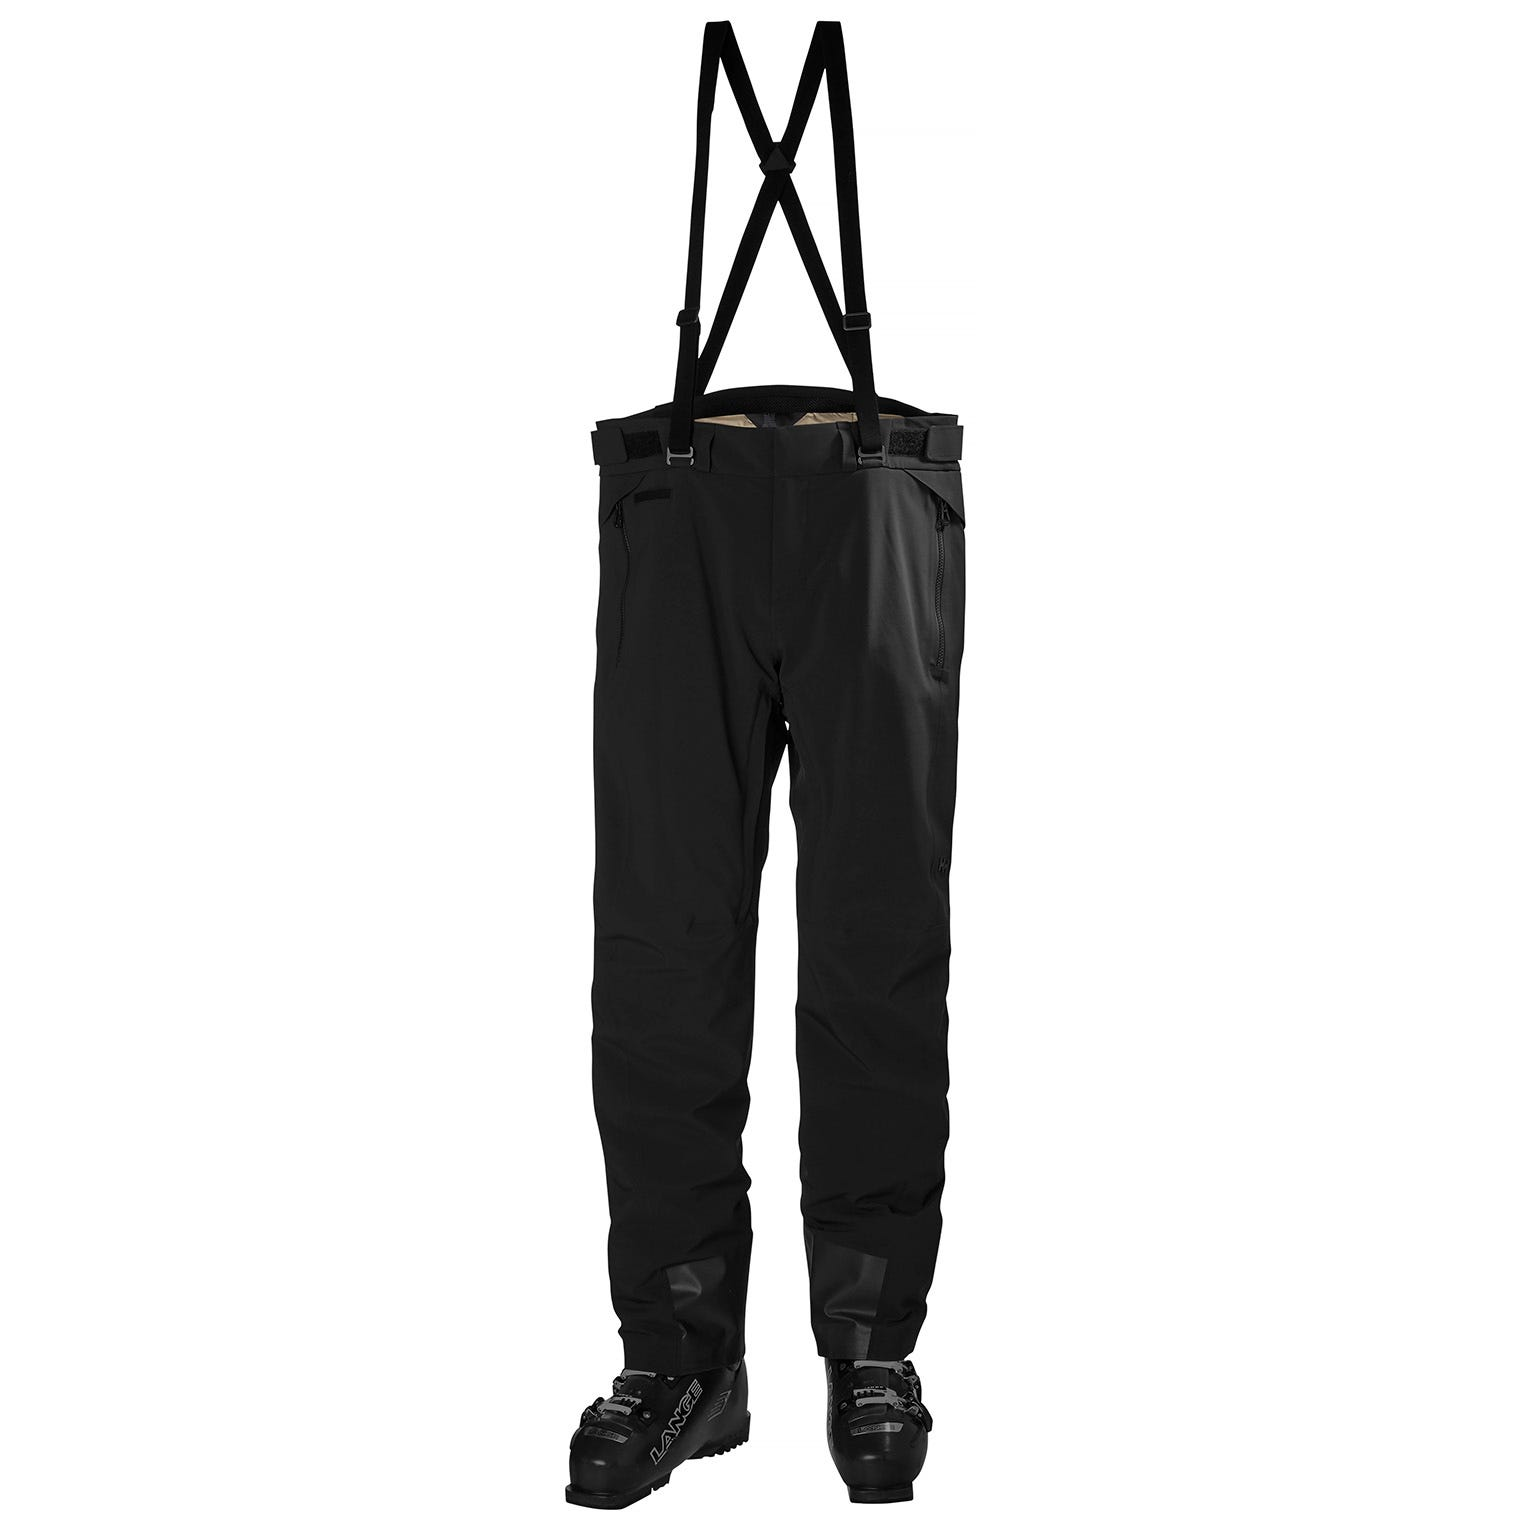 Helly Hansen Mens Icon 2.0 Trouser Black L